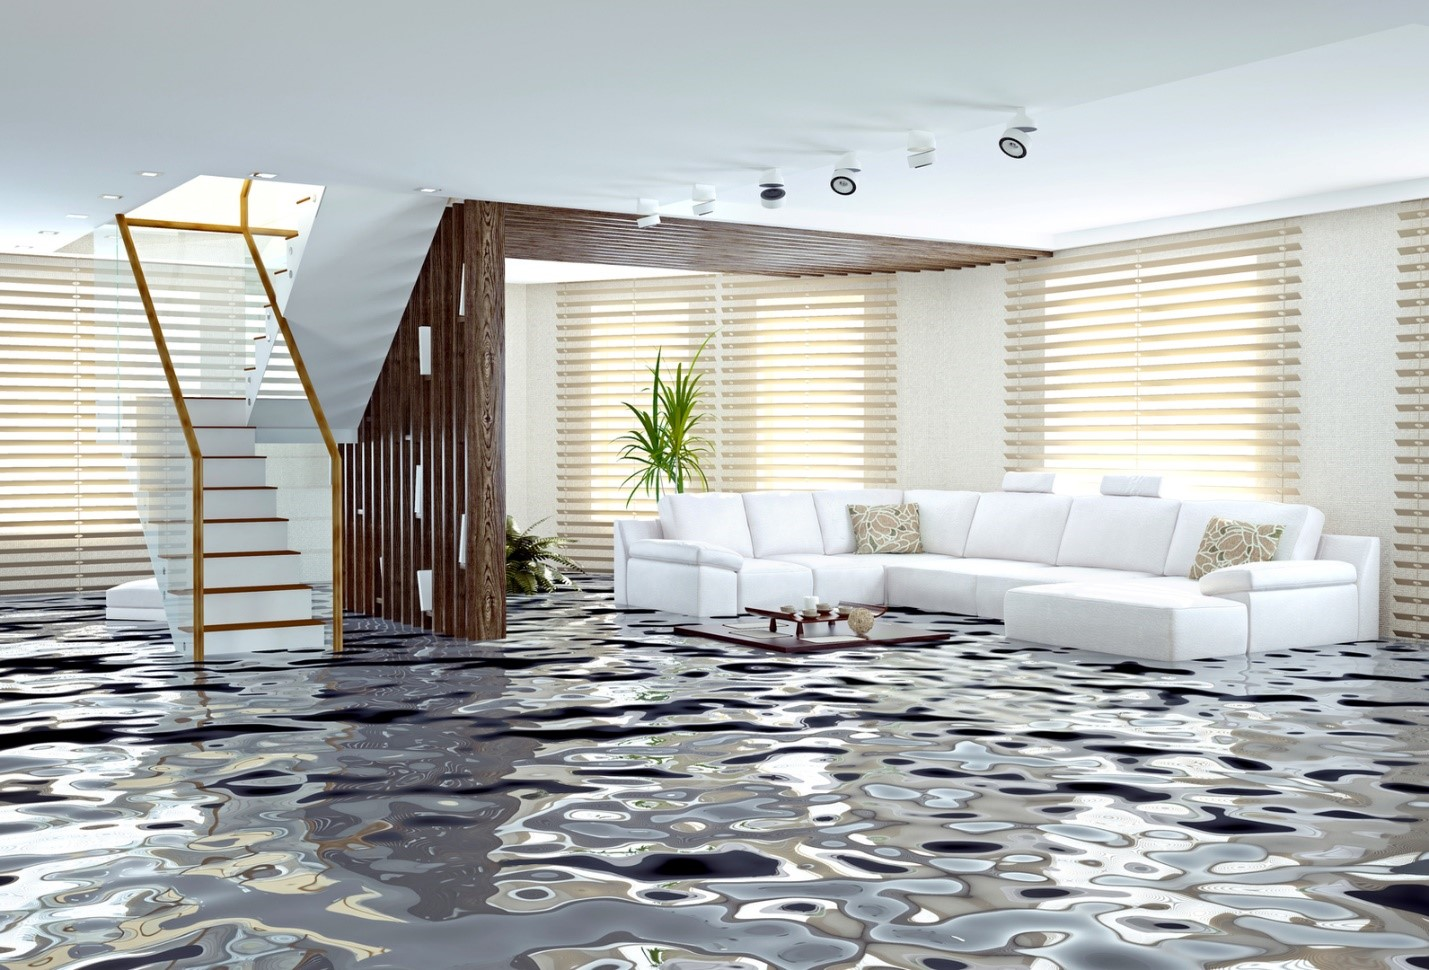 How do you intercept water damage in your home?